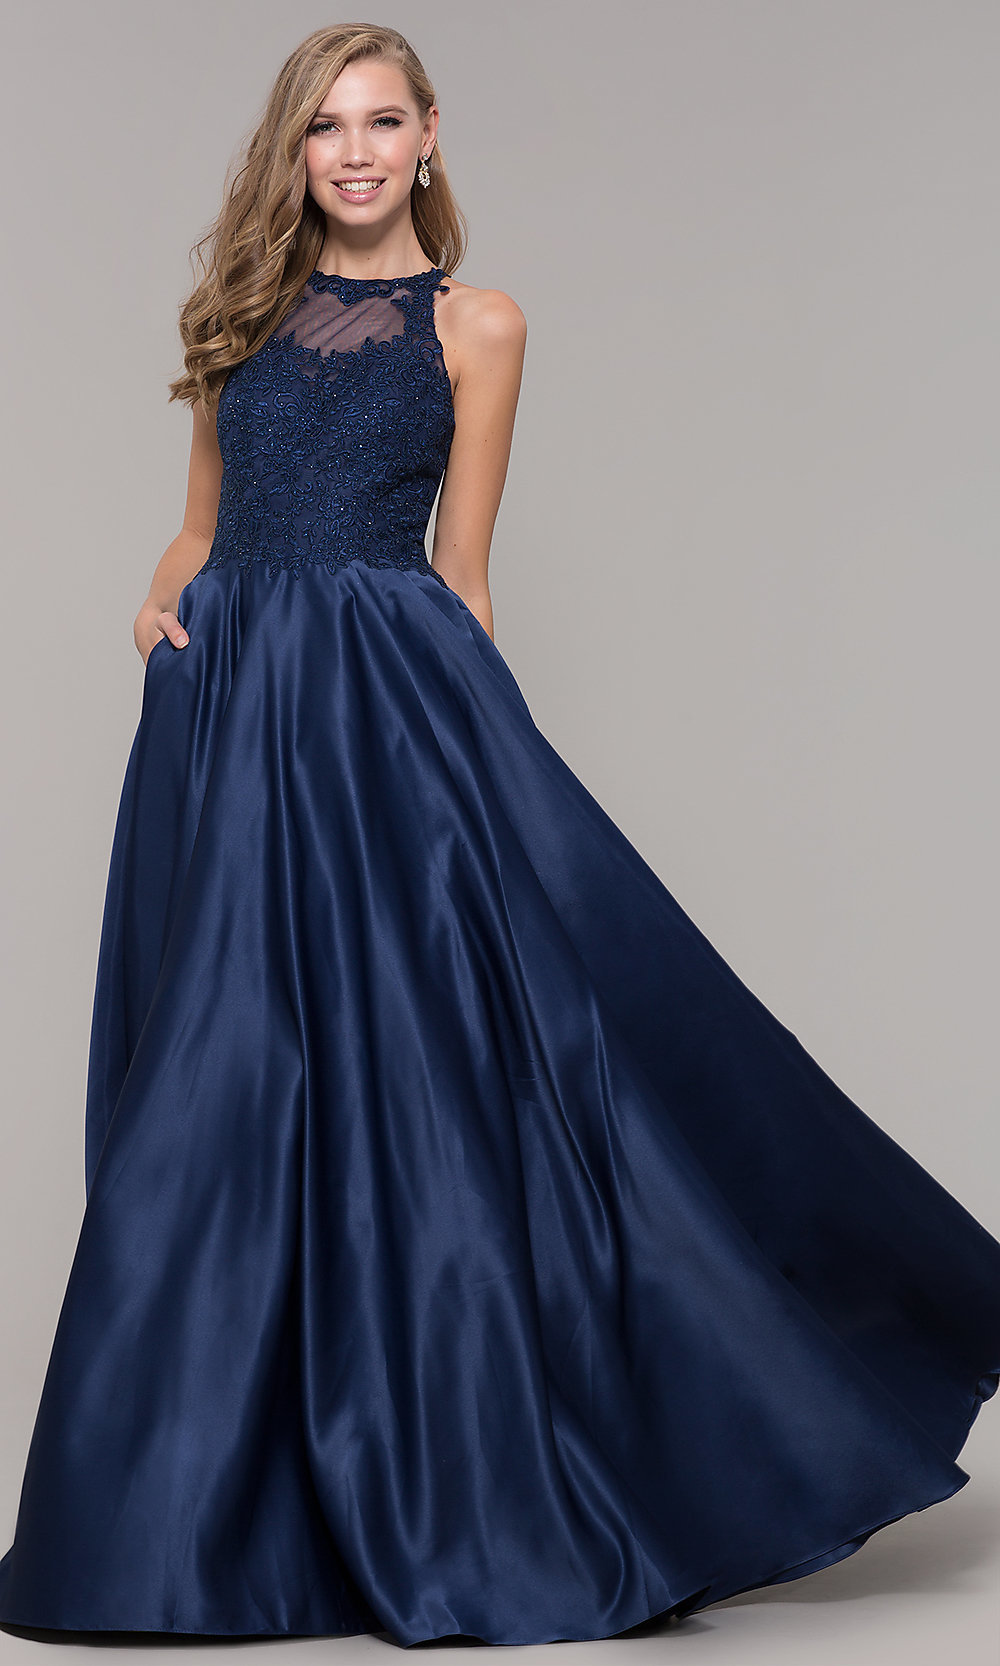 63a2bba88d7 Embroidered-Bodice Long Satin Prom Dress